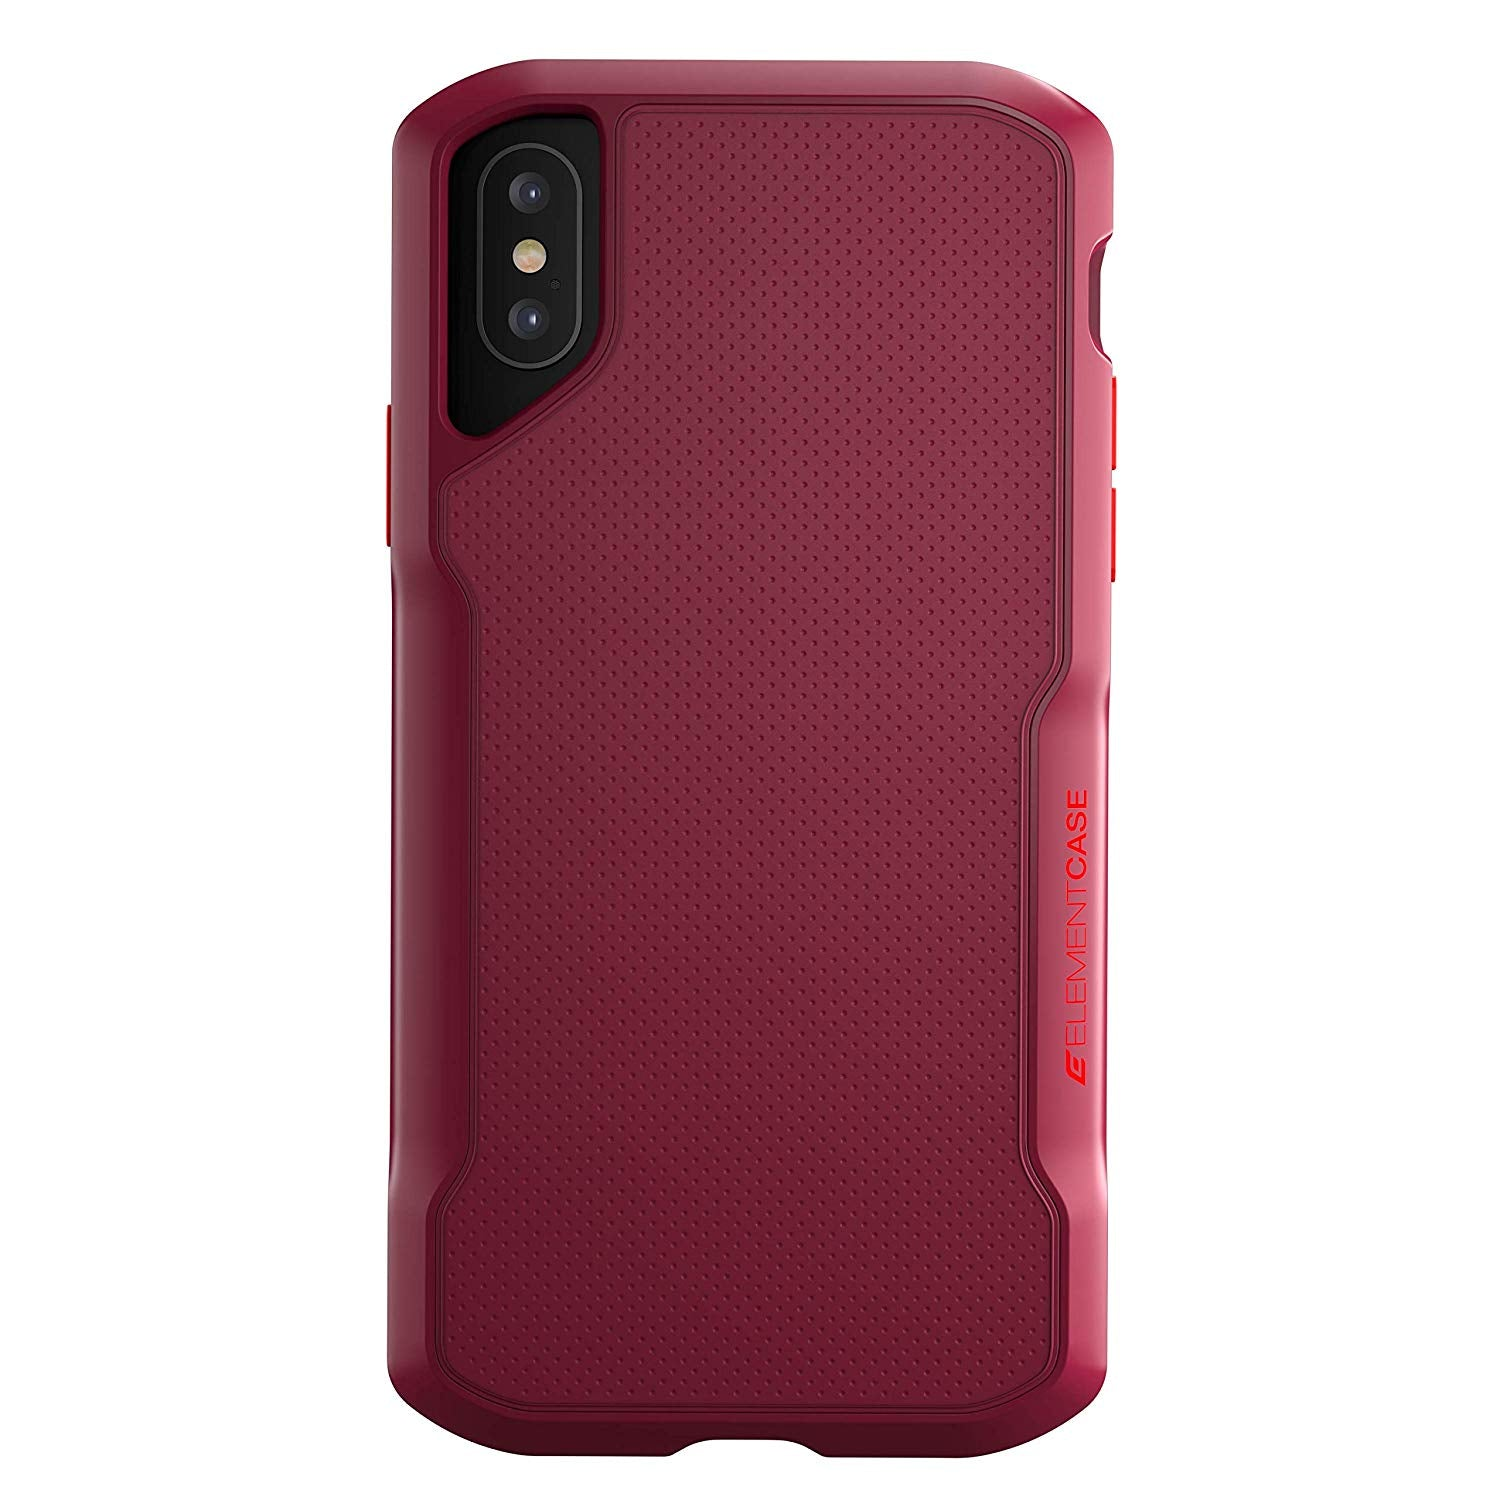 Element Case Shadow Drop Tested case for iPhone iPhone Xs/X (Red) get best offers deals free online at buythevalue.in